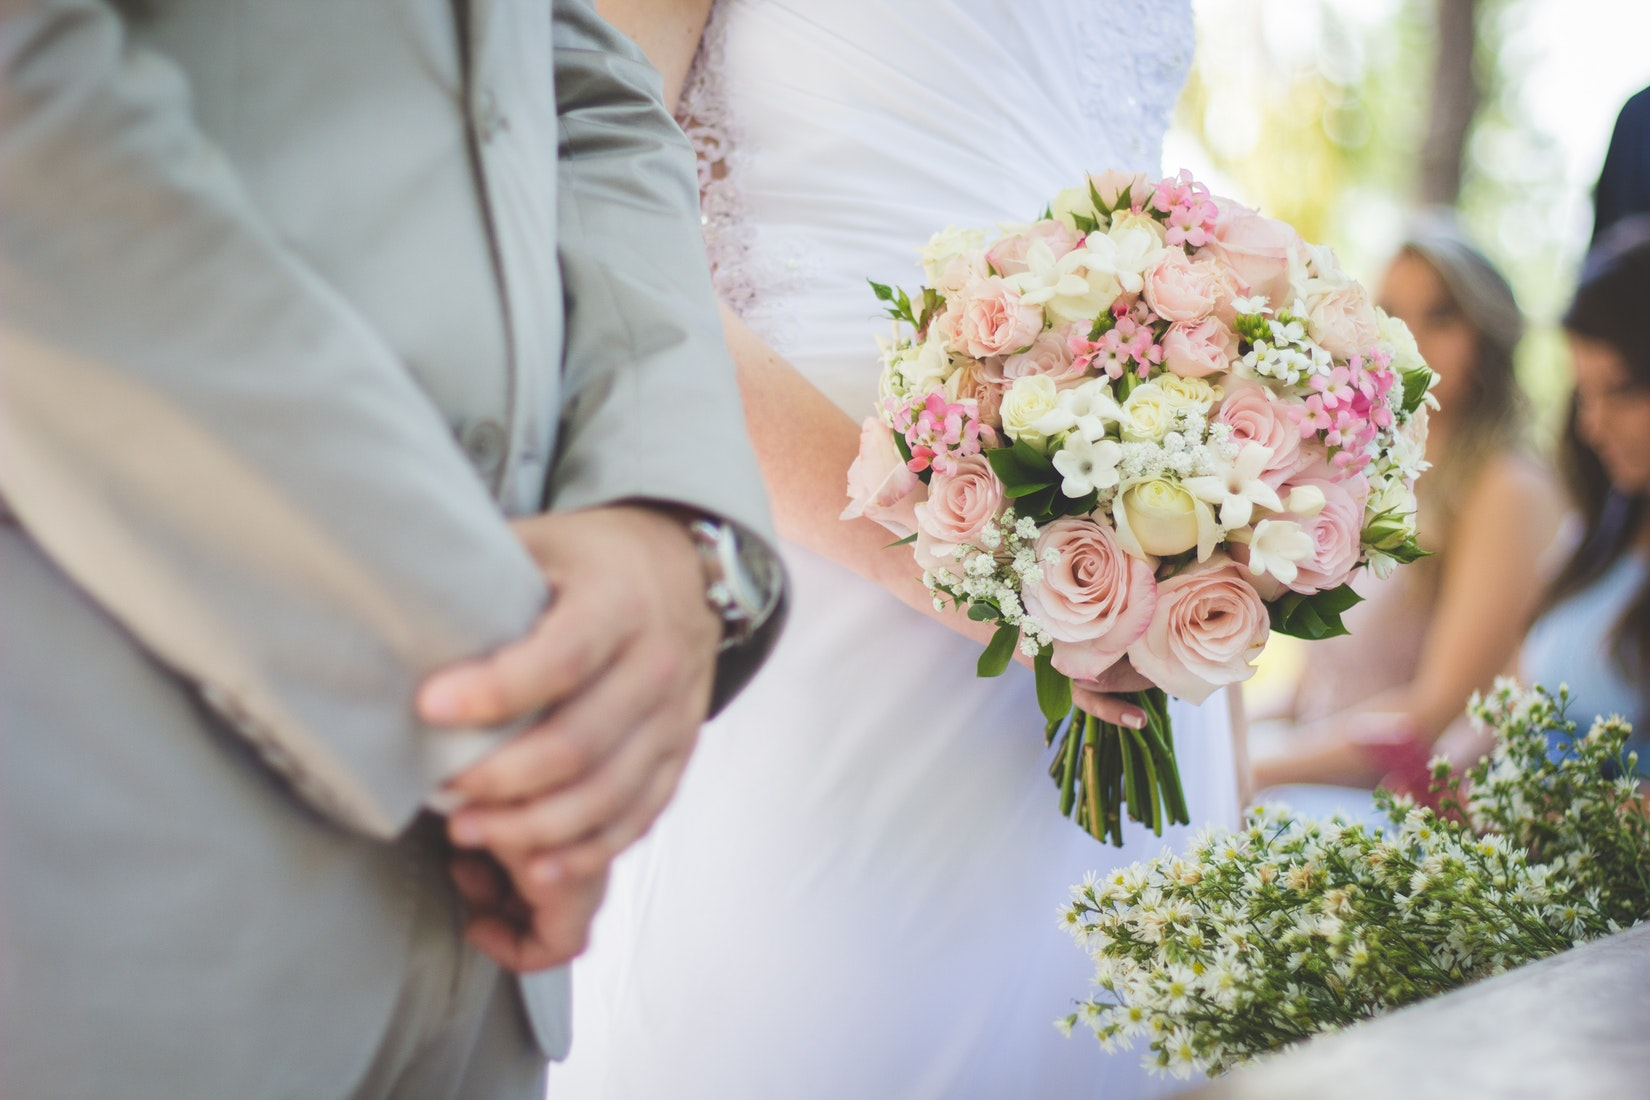 Creative Ideas For Your Wedding Day